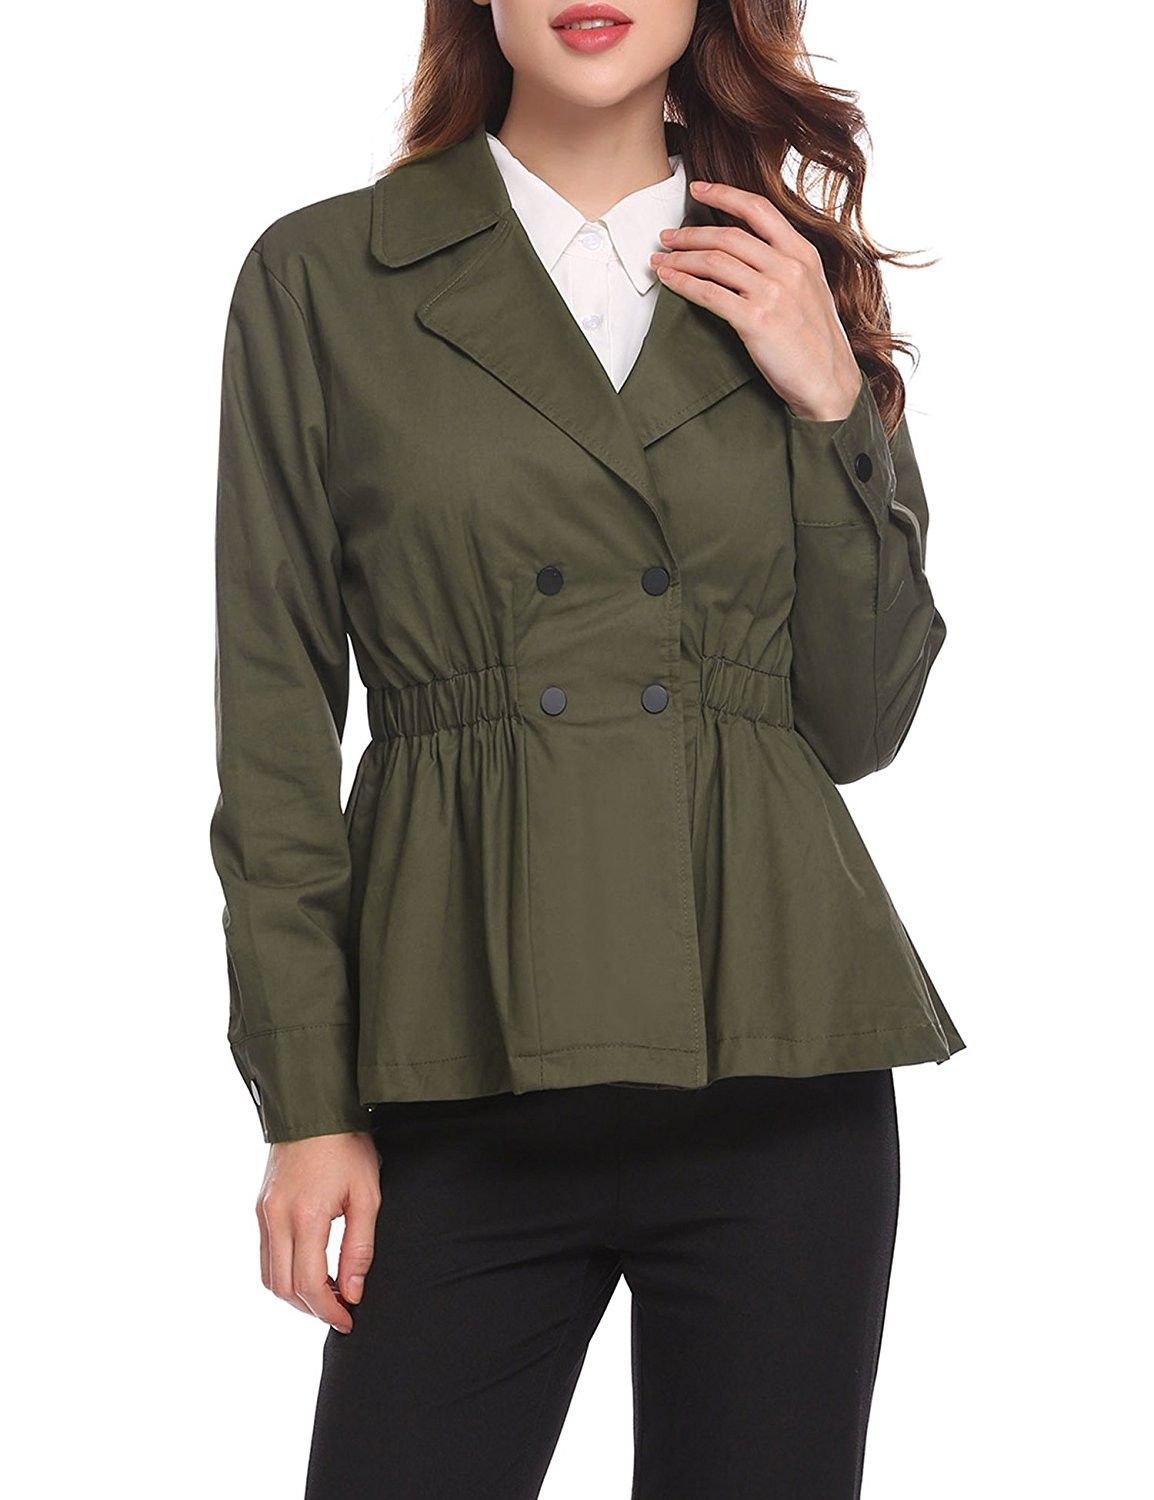 Women S Clothing Coats Jackets Vests Trench Rain Anoraks Trench Coats Women Double B Short Trench Coat Olive Green Jacket Outfits Casual Work Dresses [ 1500 x 1154 Pixel ]